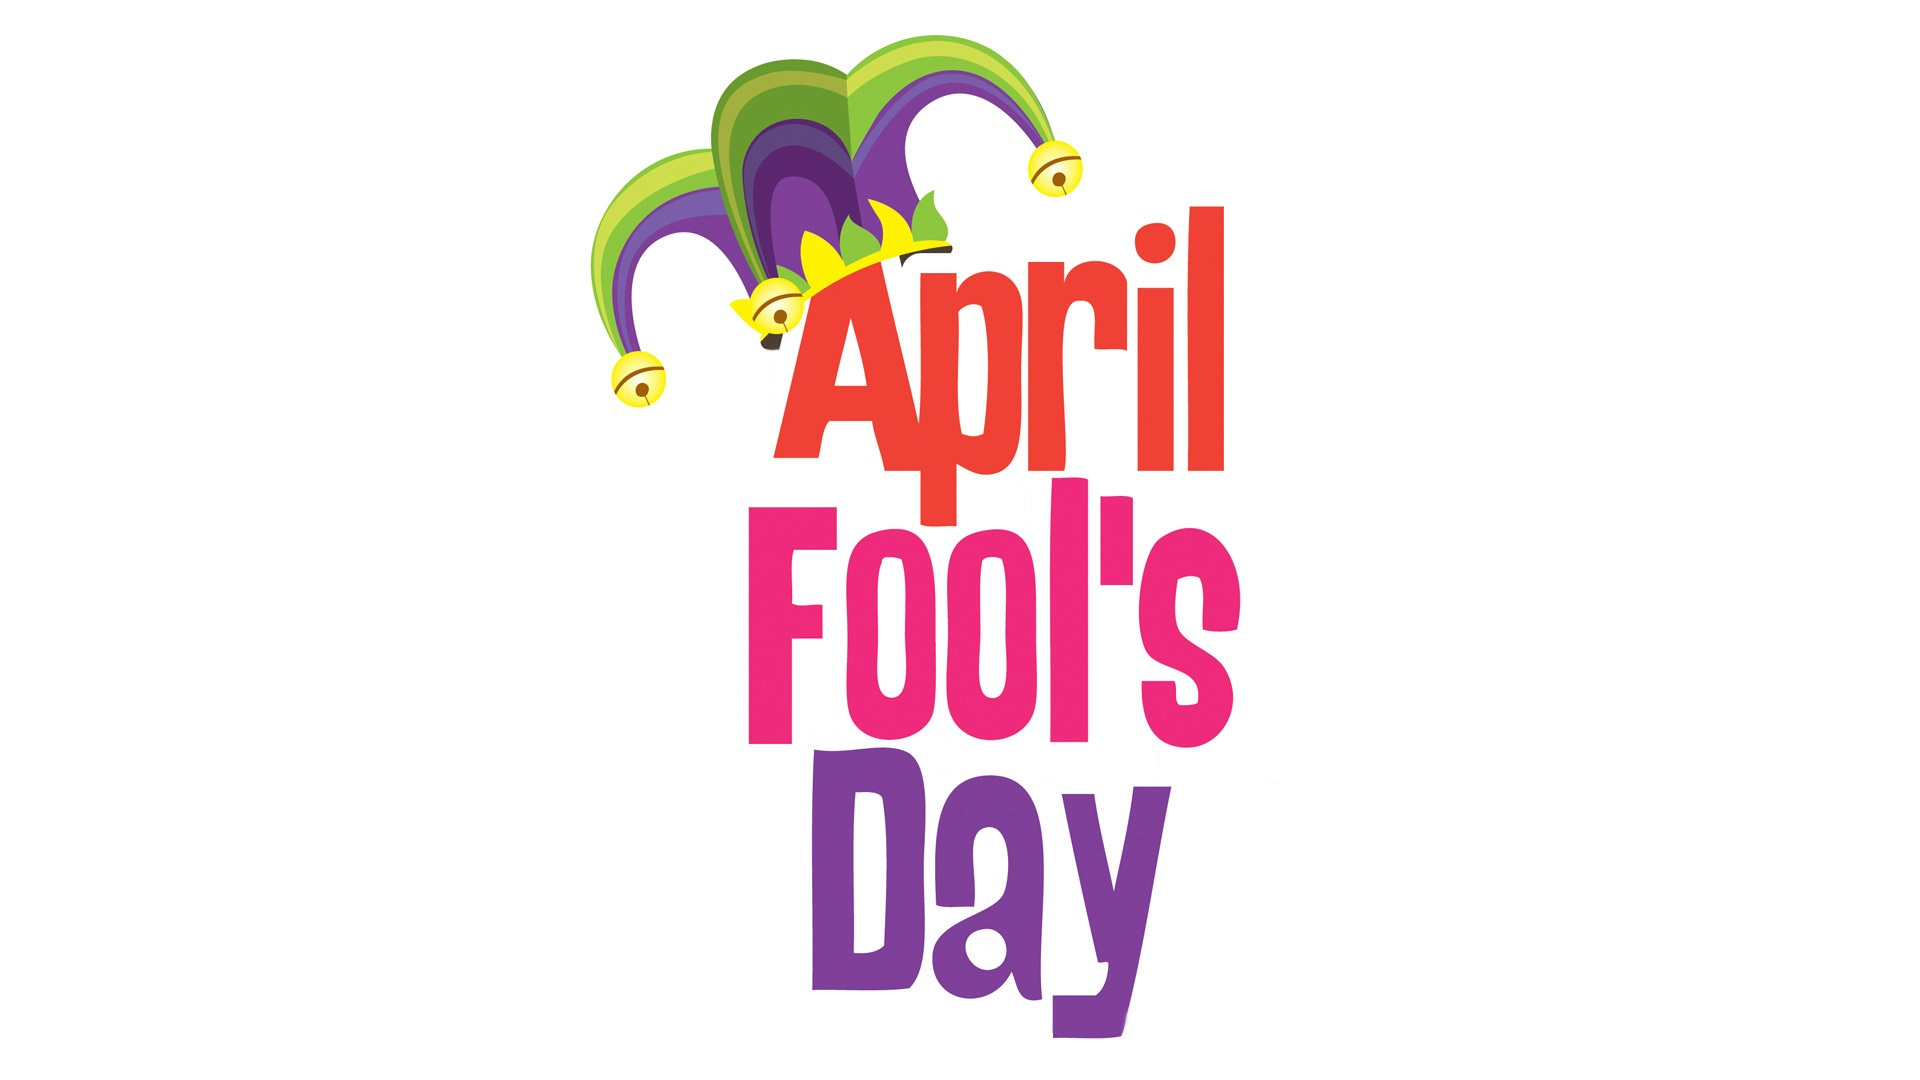 1920x1080 April fools day clipart wallpapers